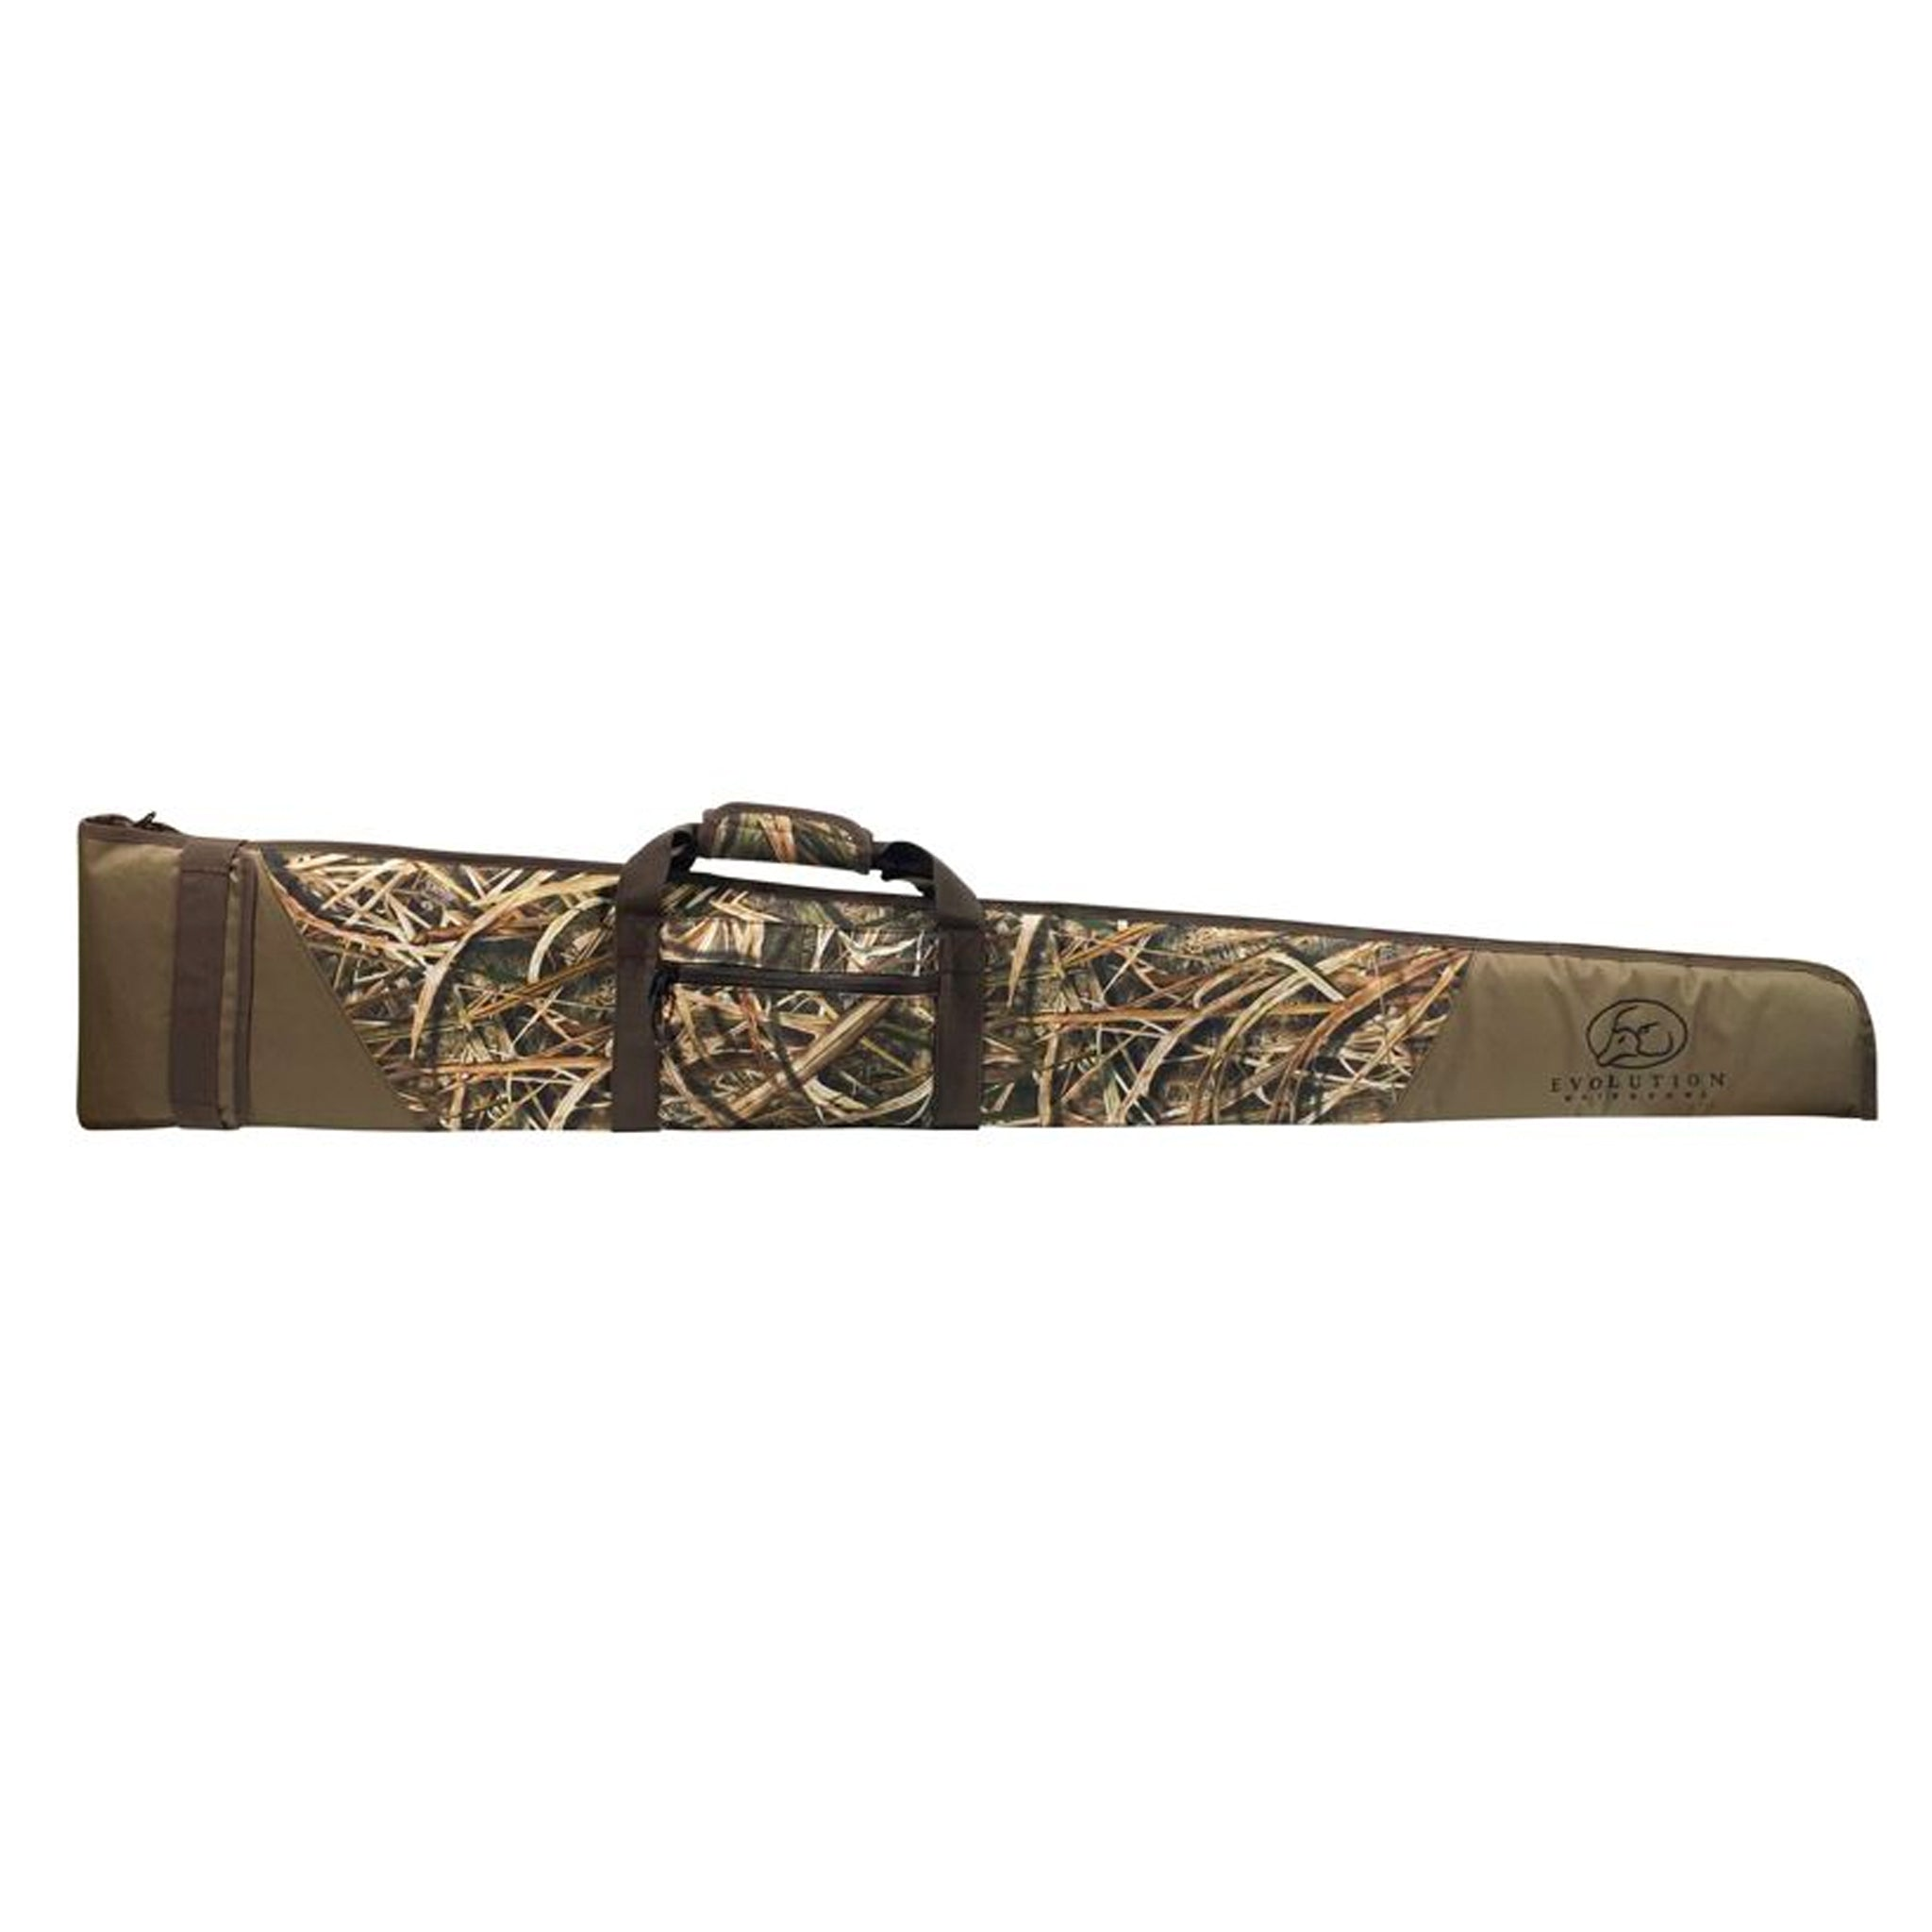 "56"" Rolltop Mossy Oak Floating Shotgun Case - Blades"